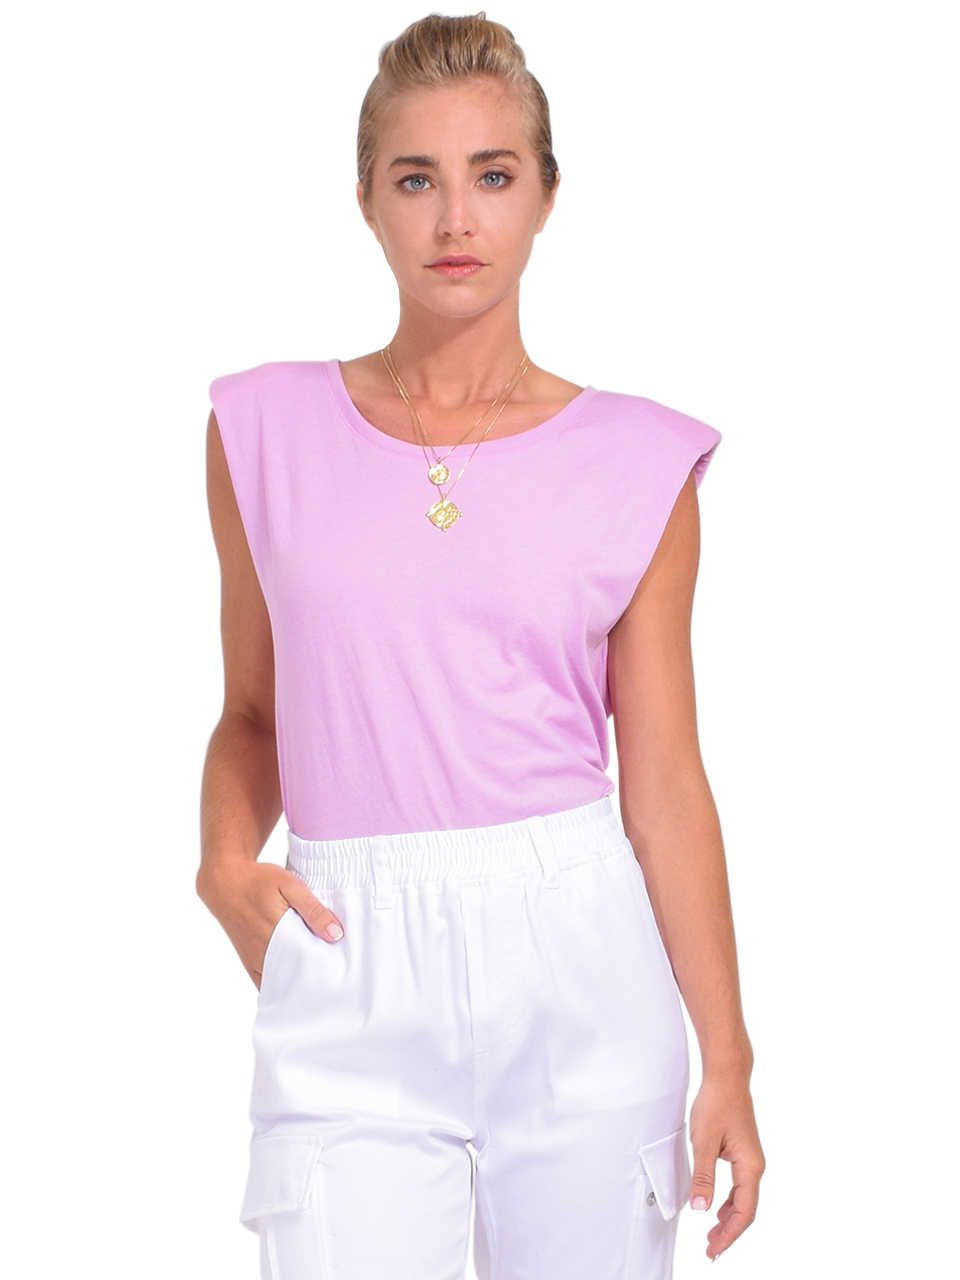 Alla Berman Jaymes Tee in Lilac Front View